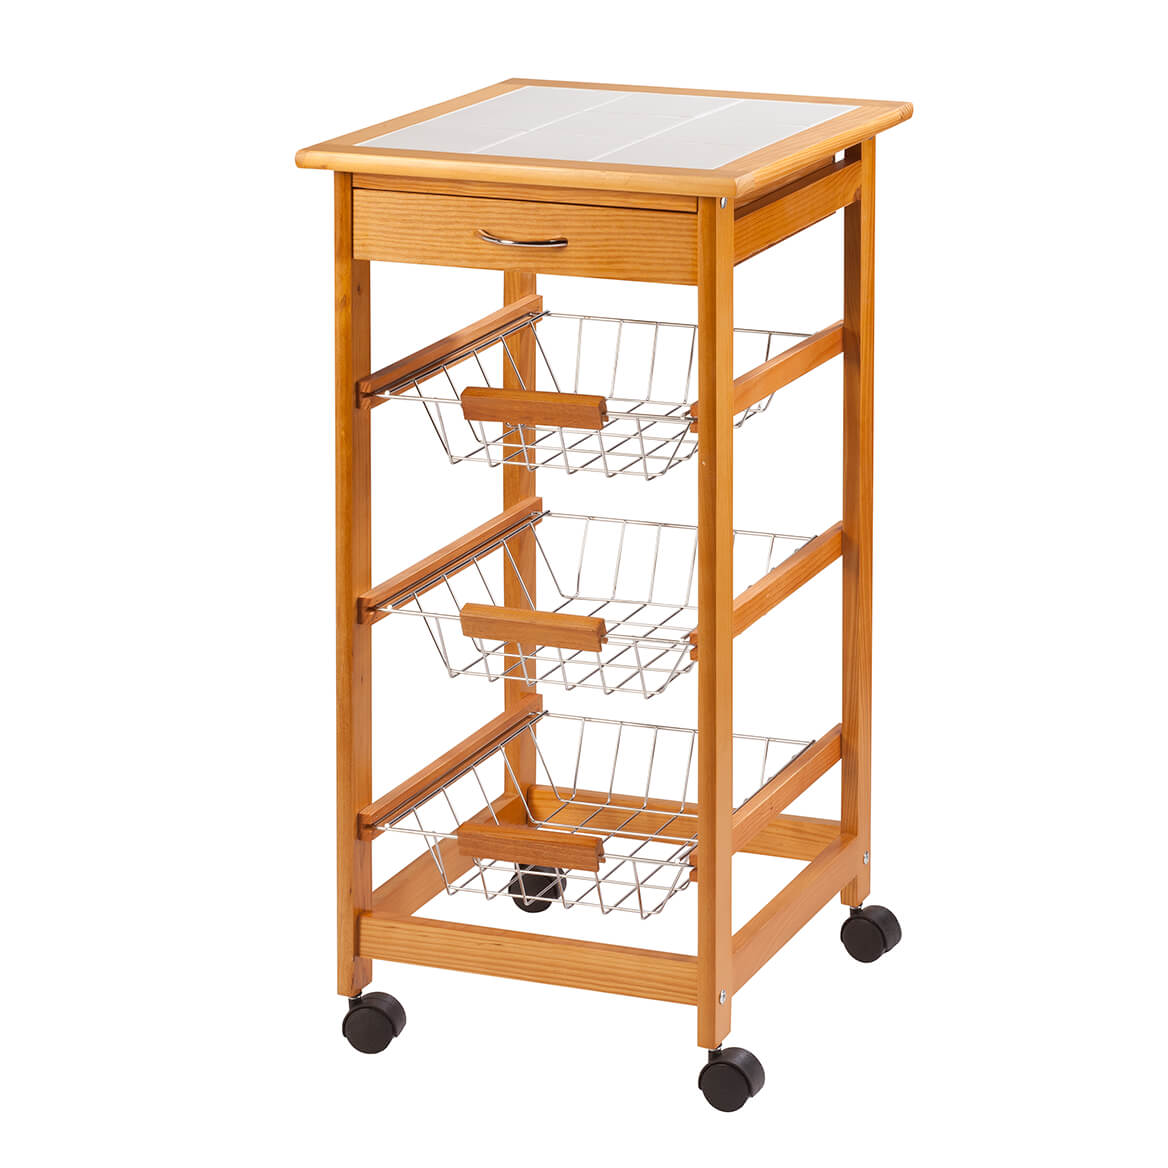 Home Marketplace Rolling Kitchen Cart     XL-366188